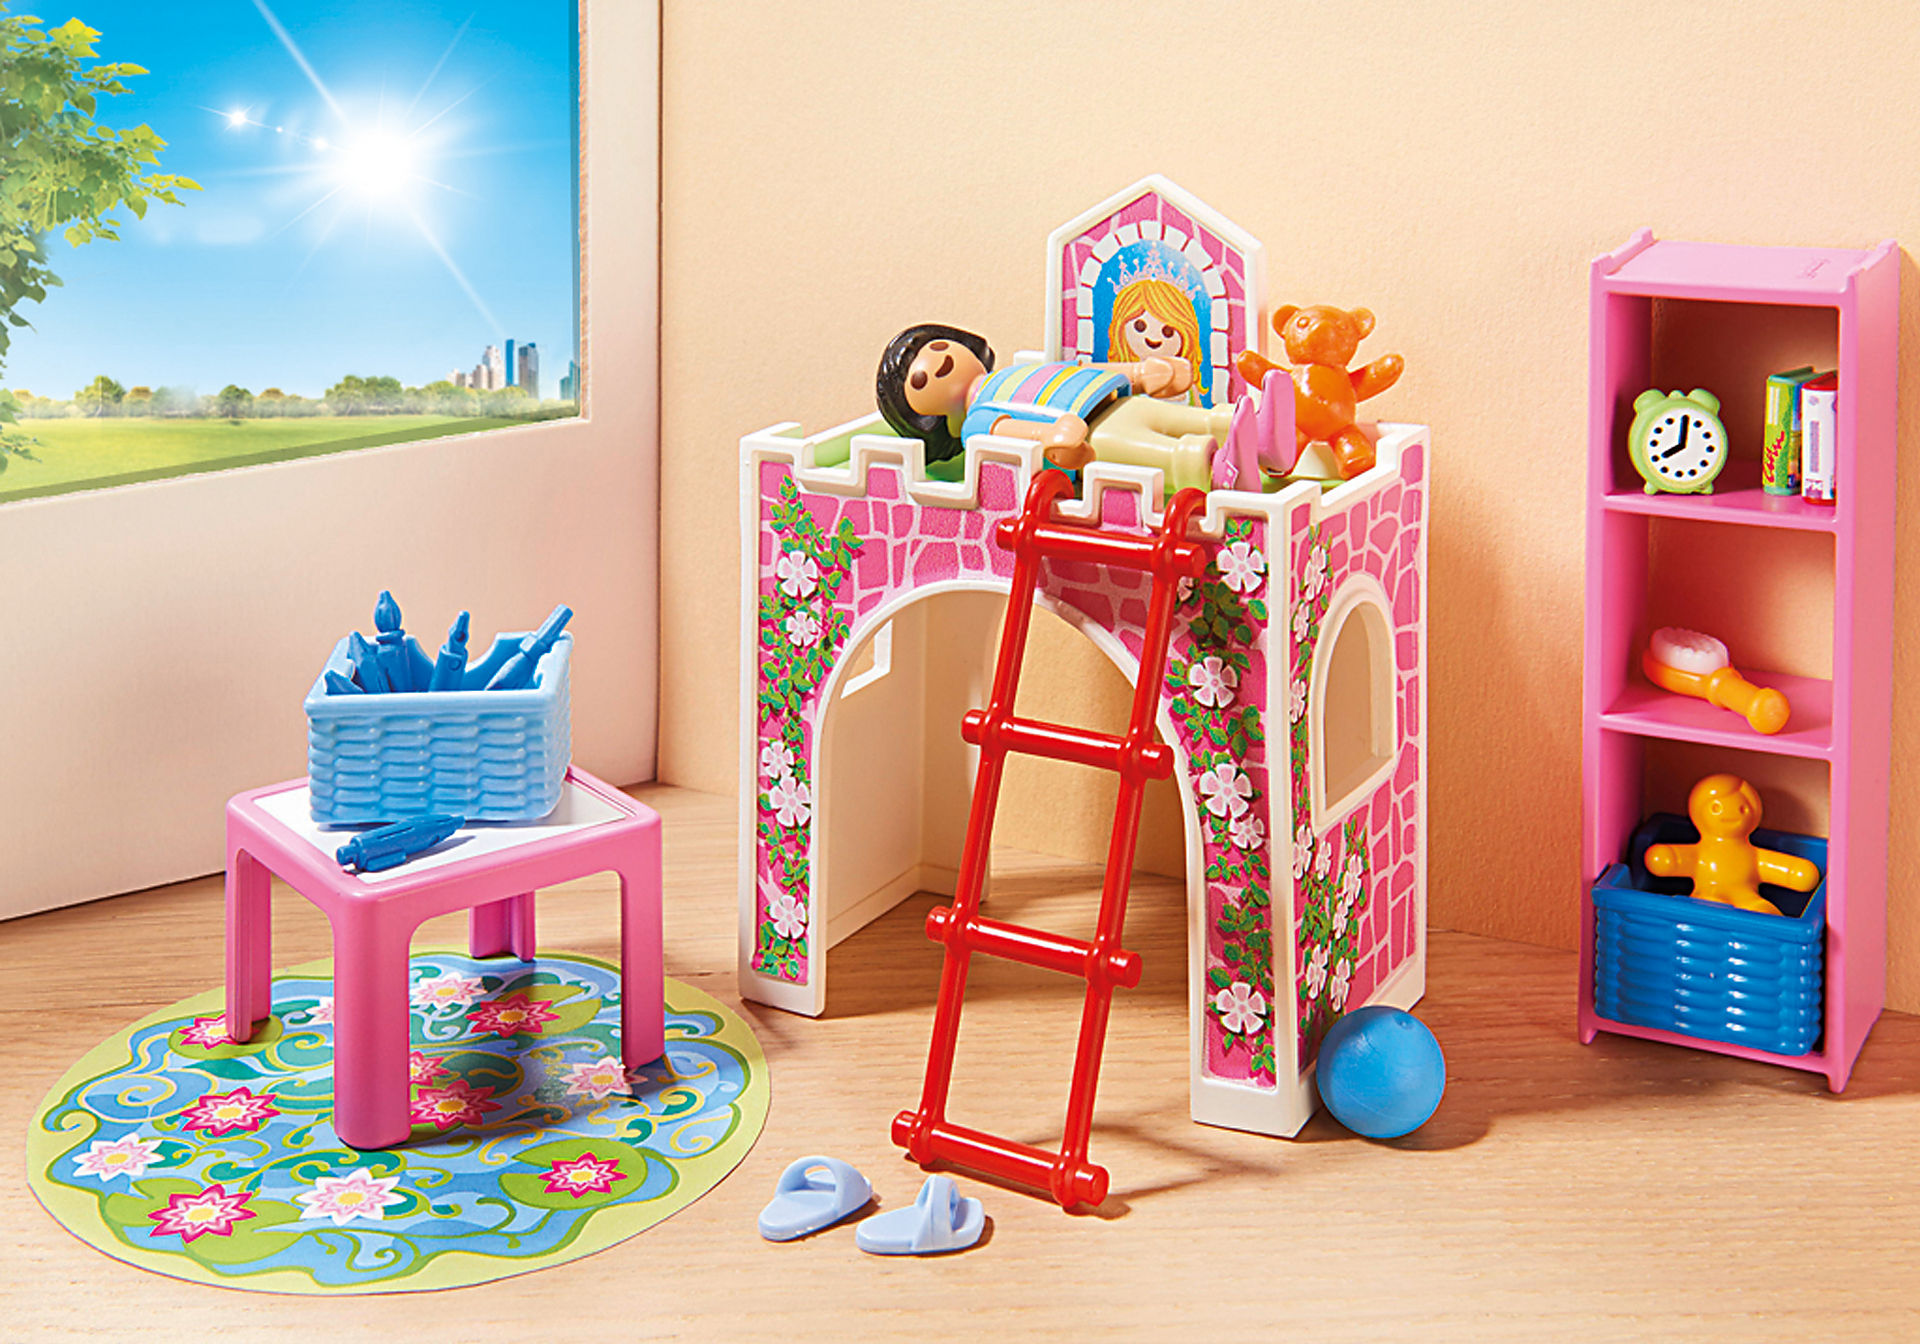 http://media.playmobil.com/i/playmobil/9270_product_extra1/Fröhliches Kinderzimmer